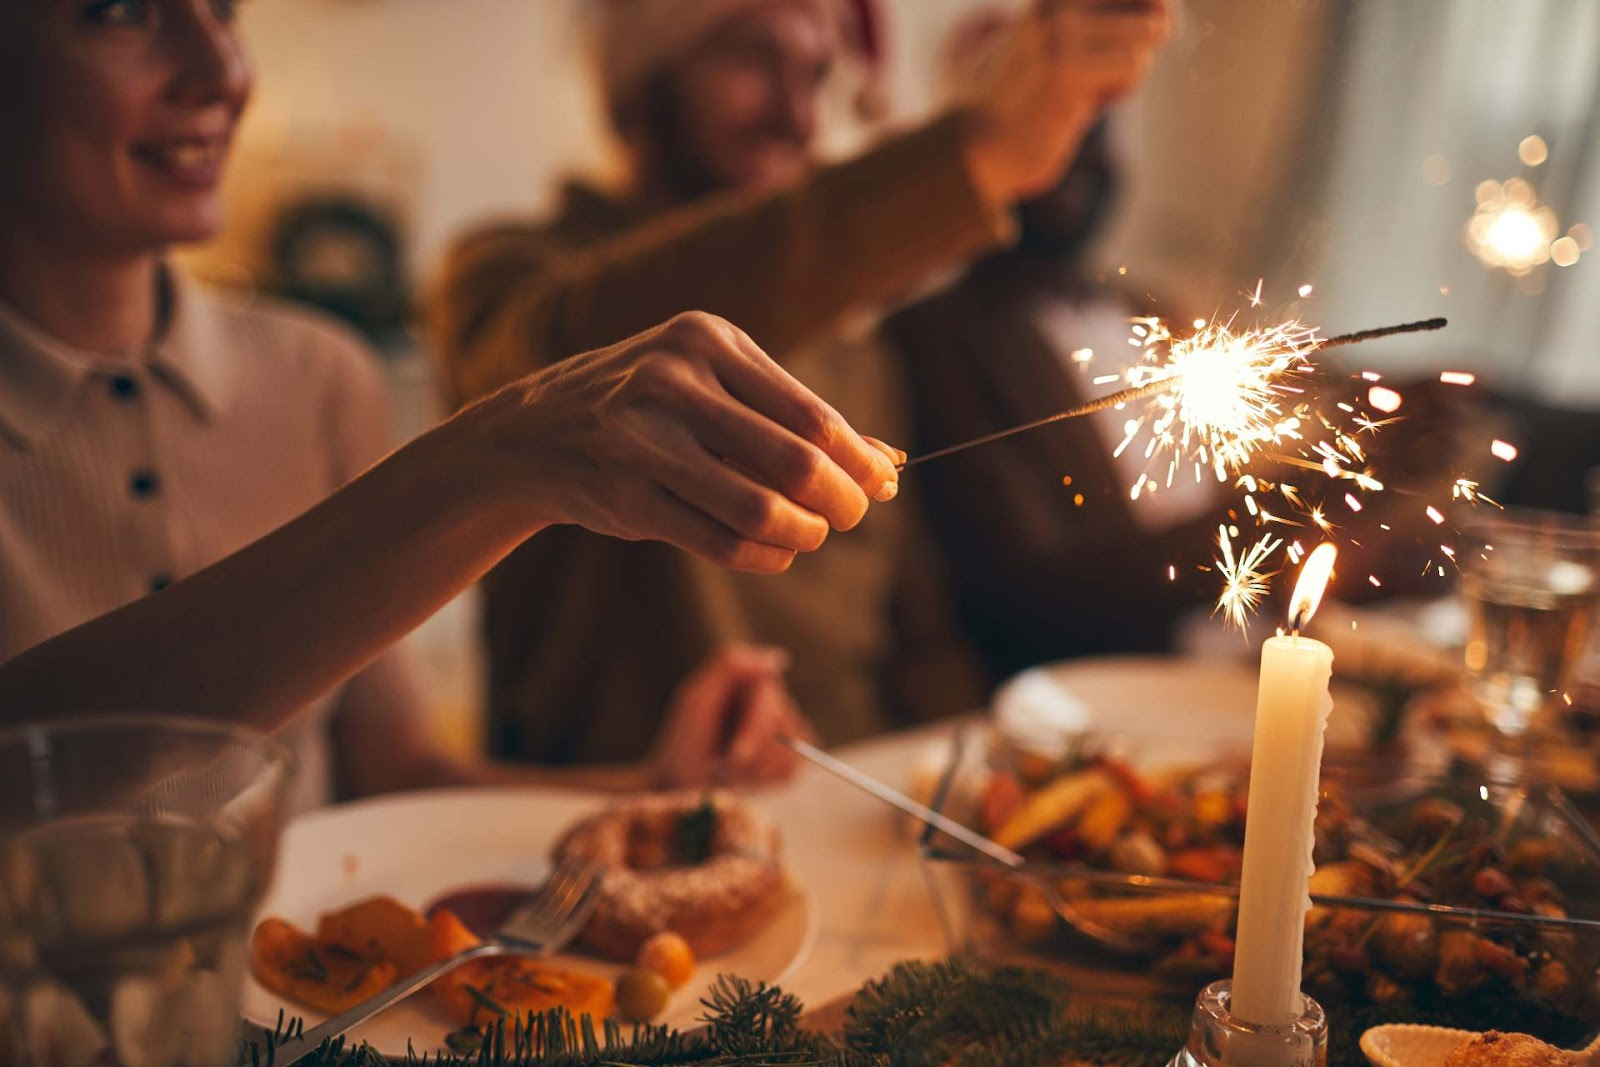 Woman lighting a sparkler at the dinner table